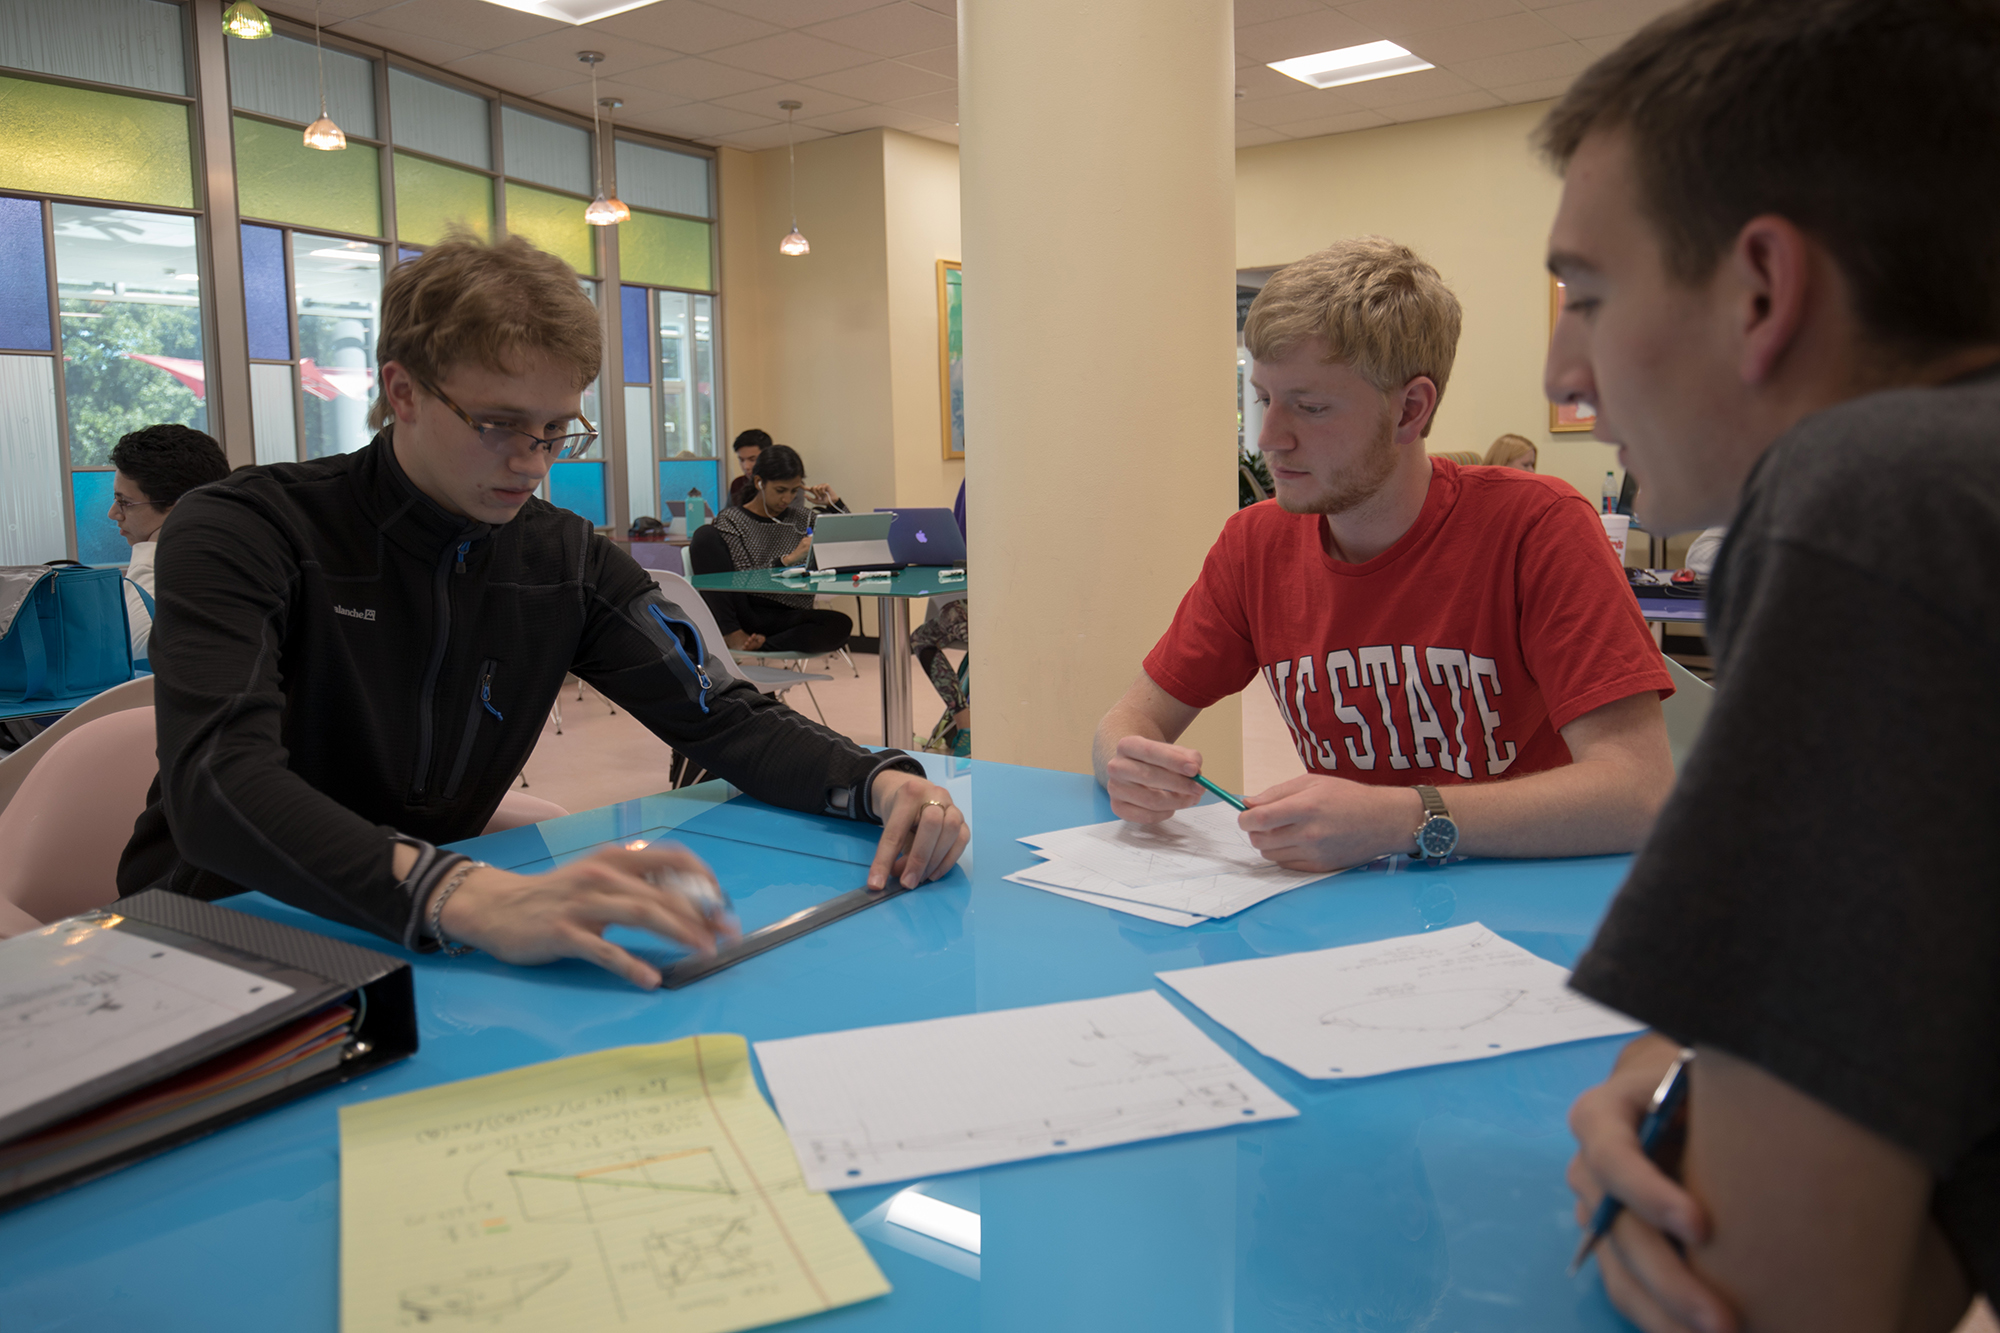 Three students using a ruler and papers at a table in the cone zone